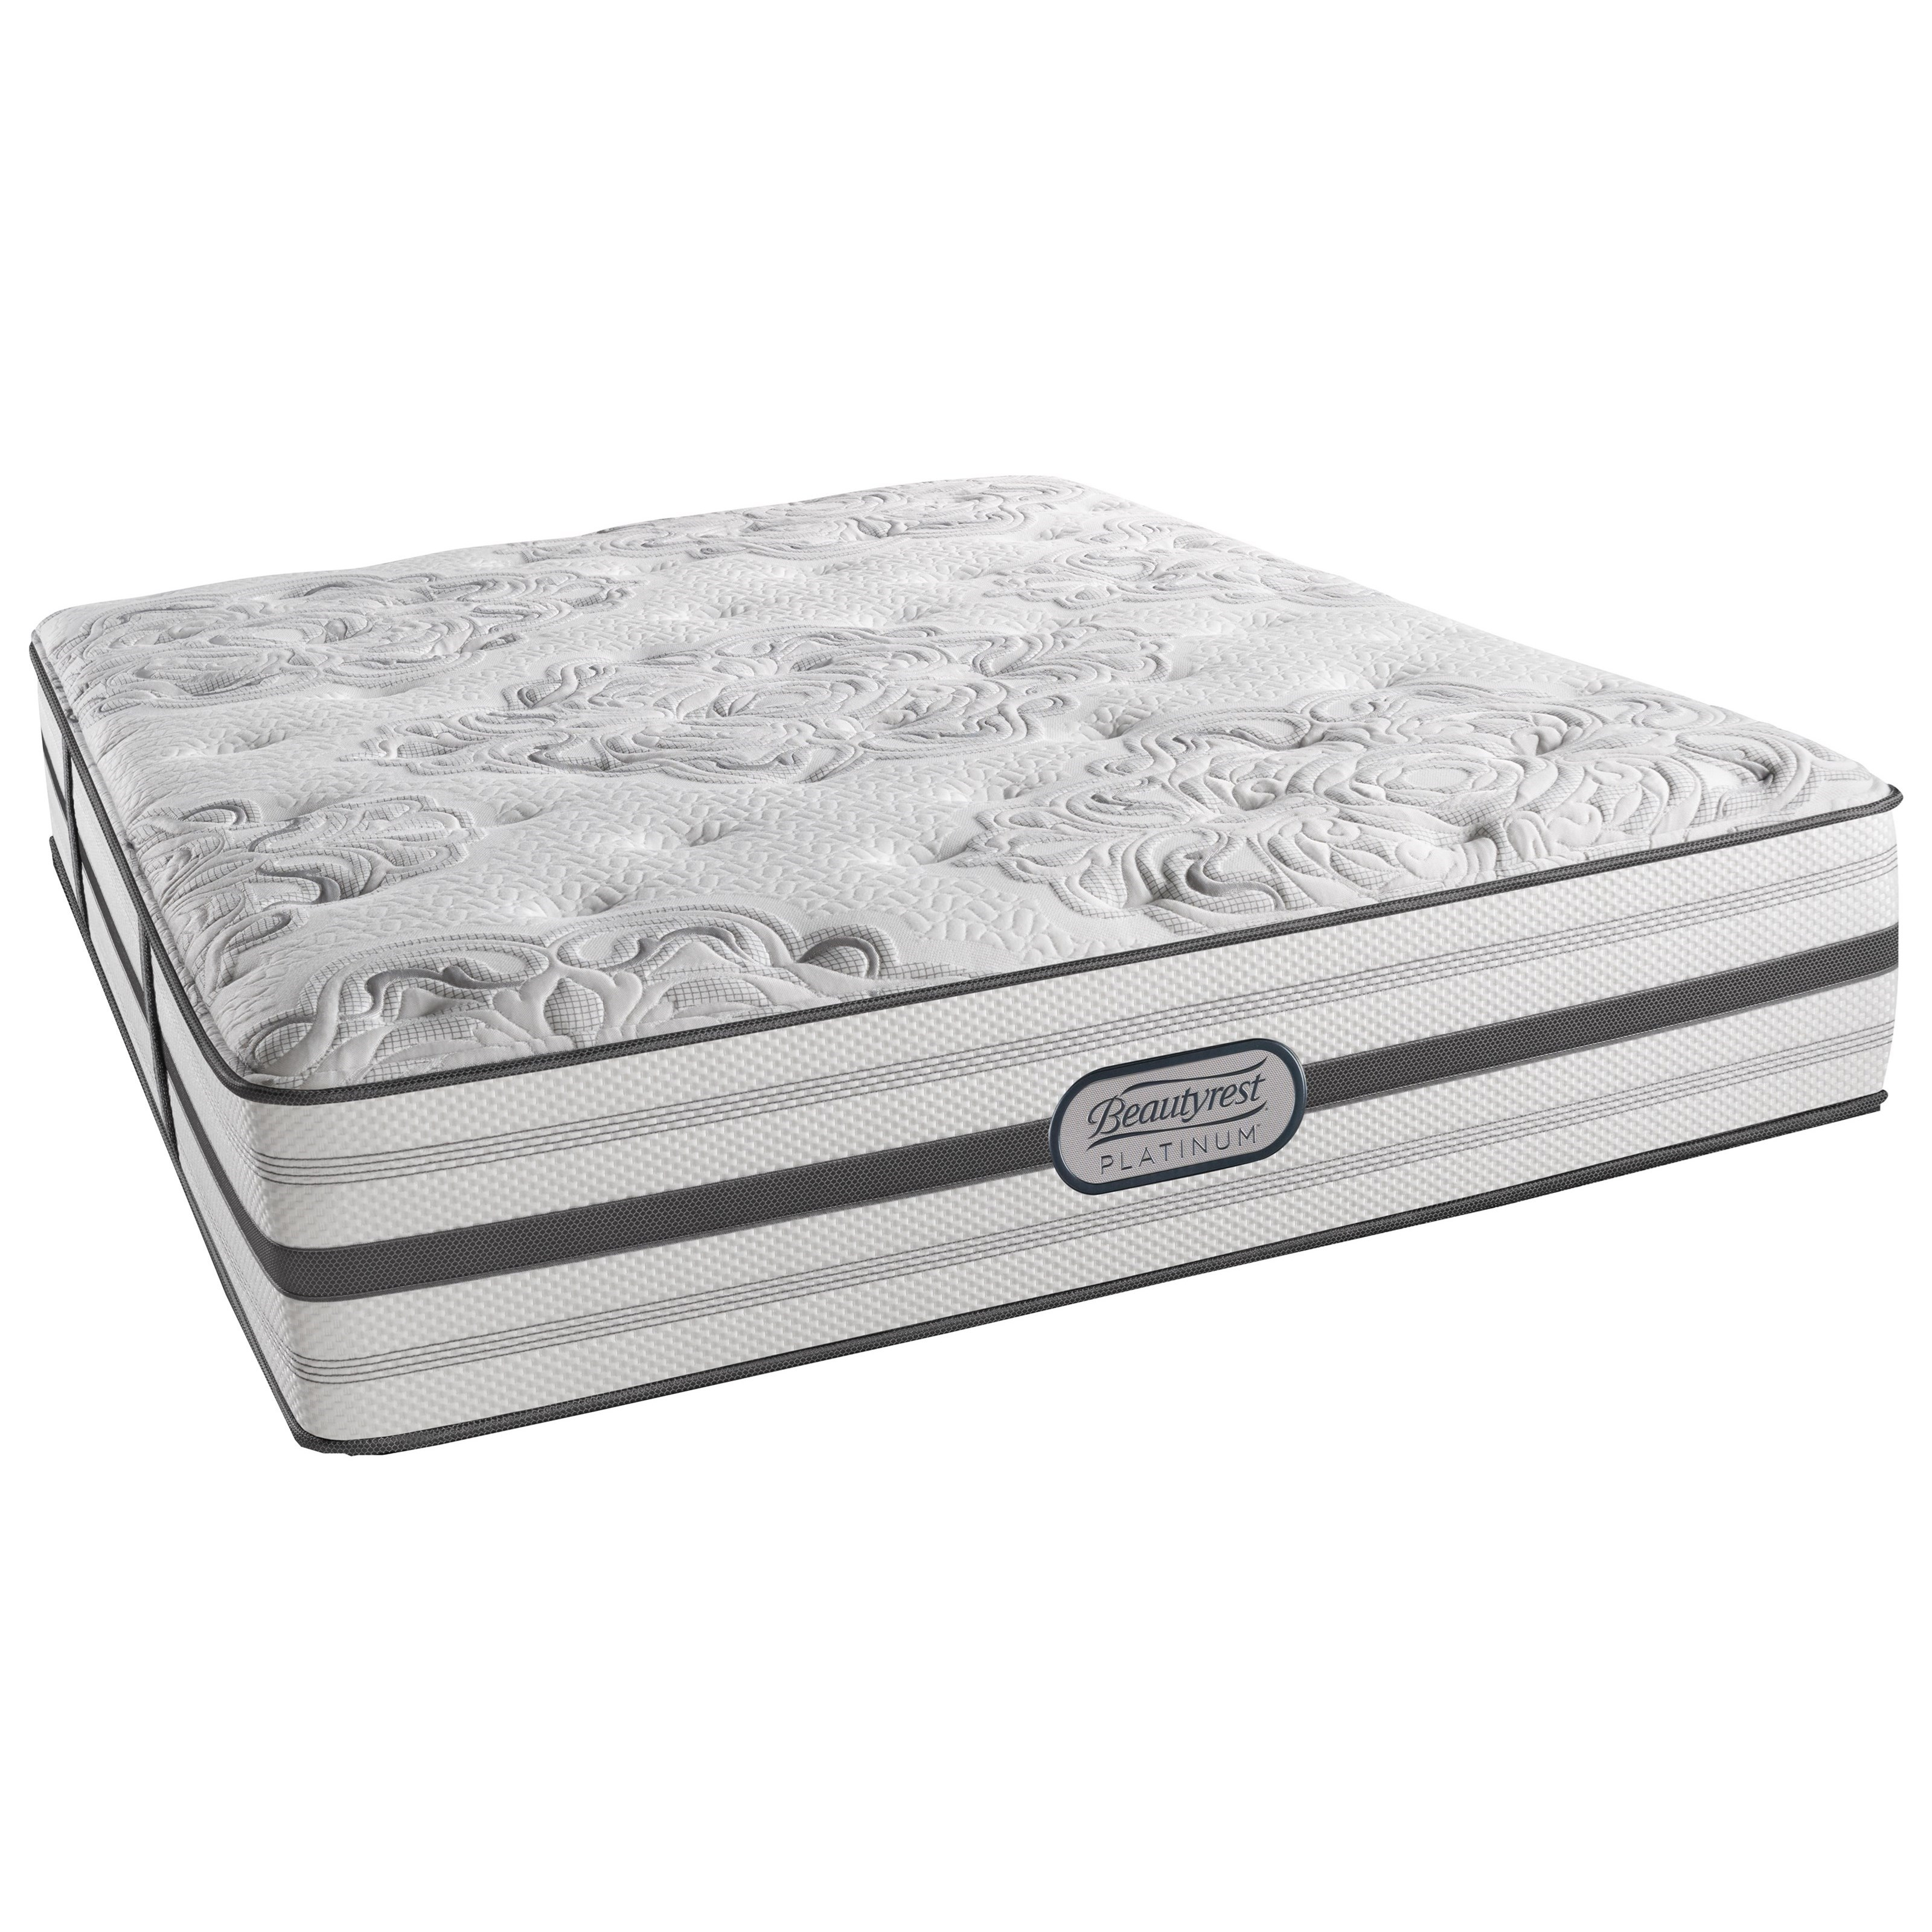 "Beautyrest Platinum Brittany Full Luxury Firm 14.5"" Mattress - Item Number: LV2LFM-F"